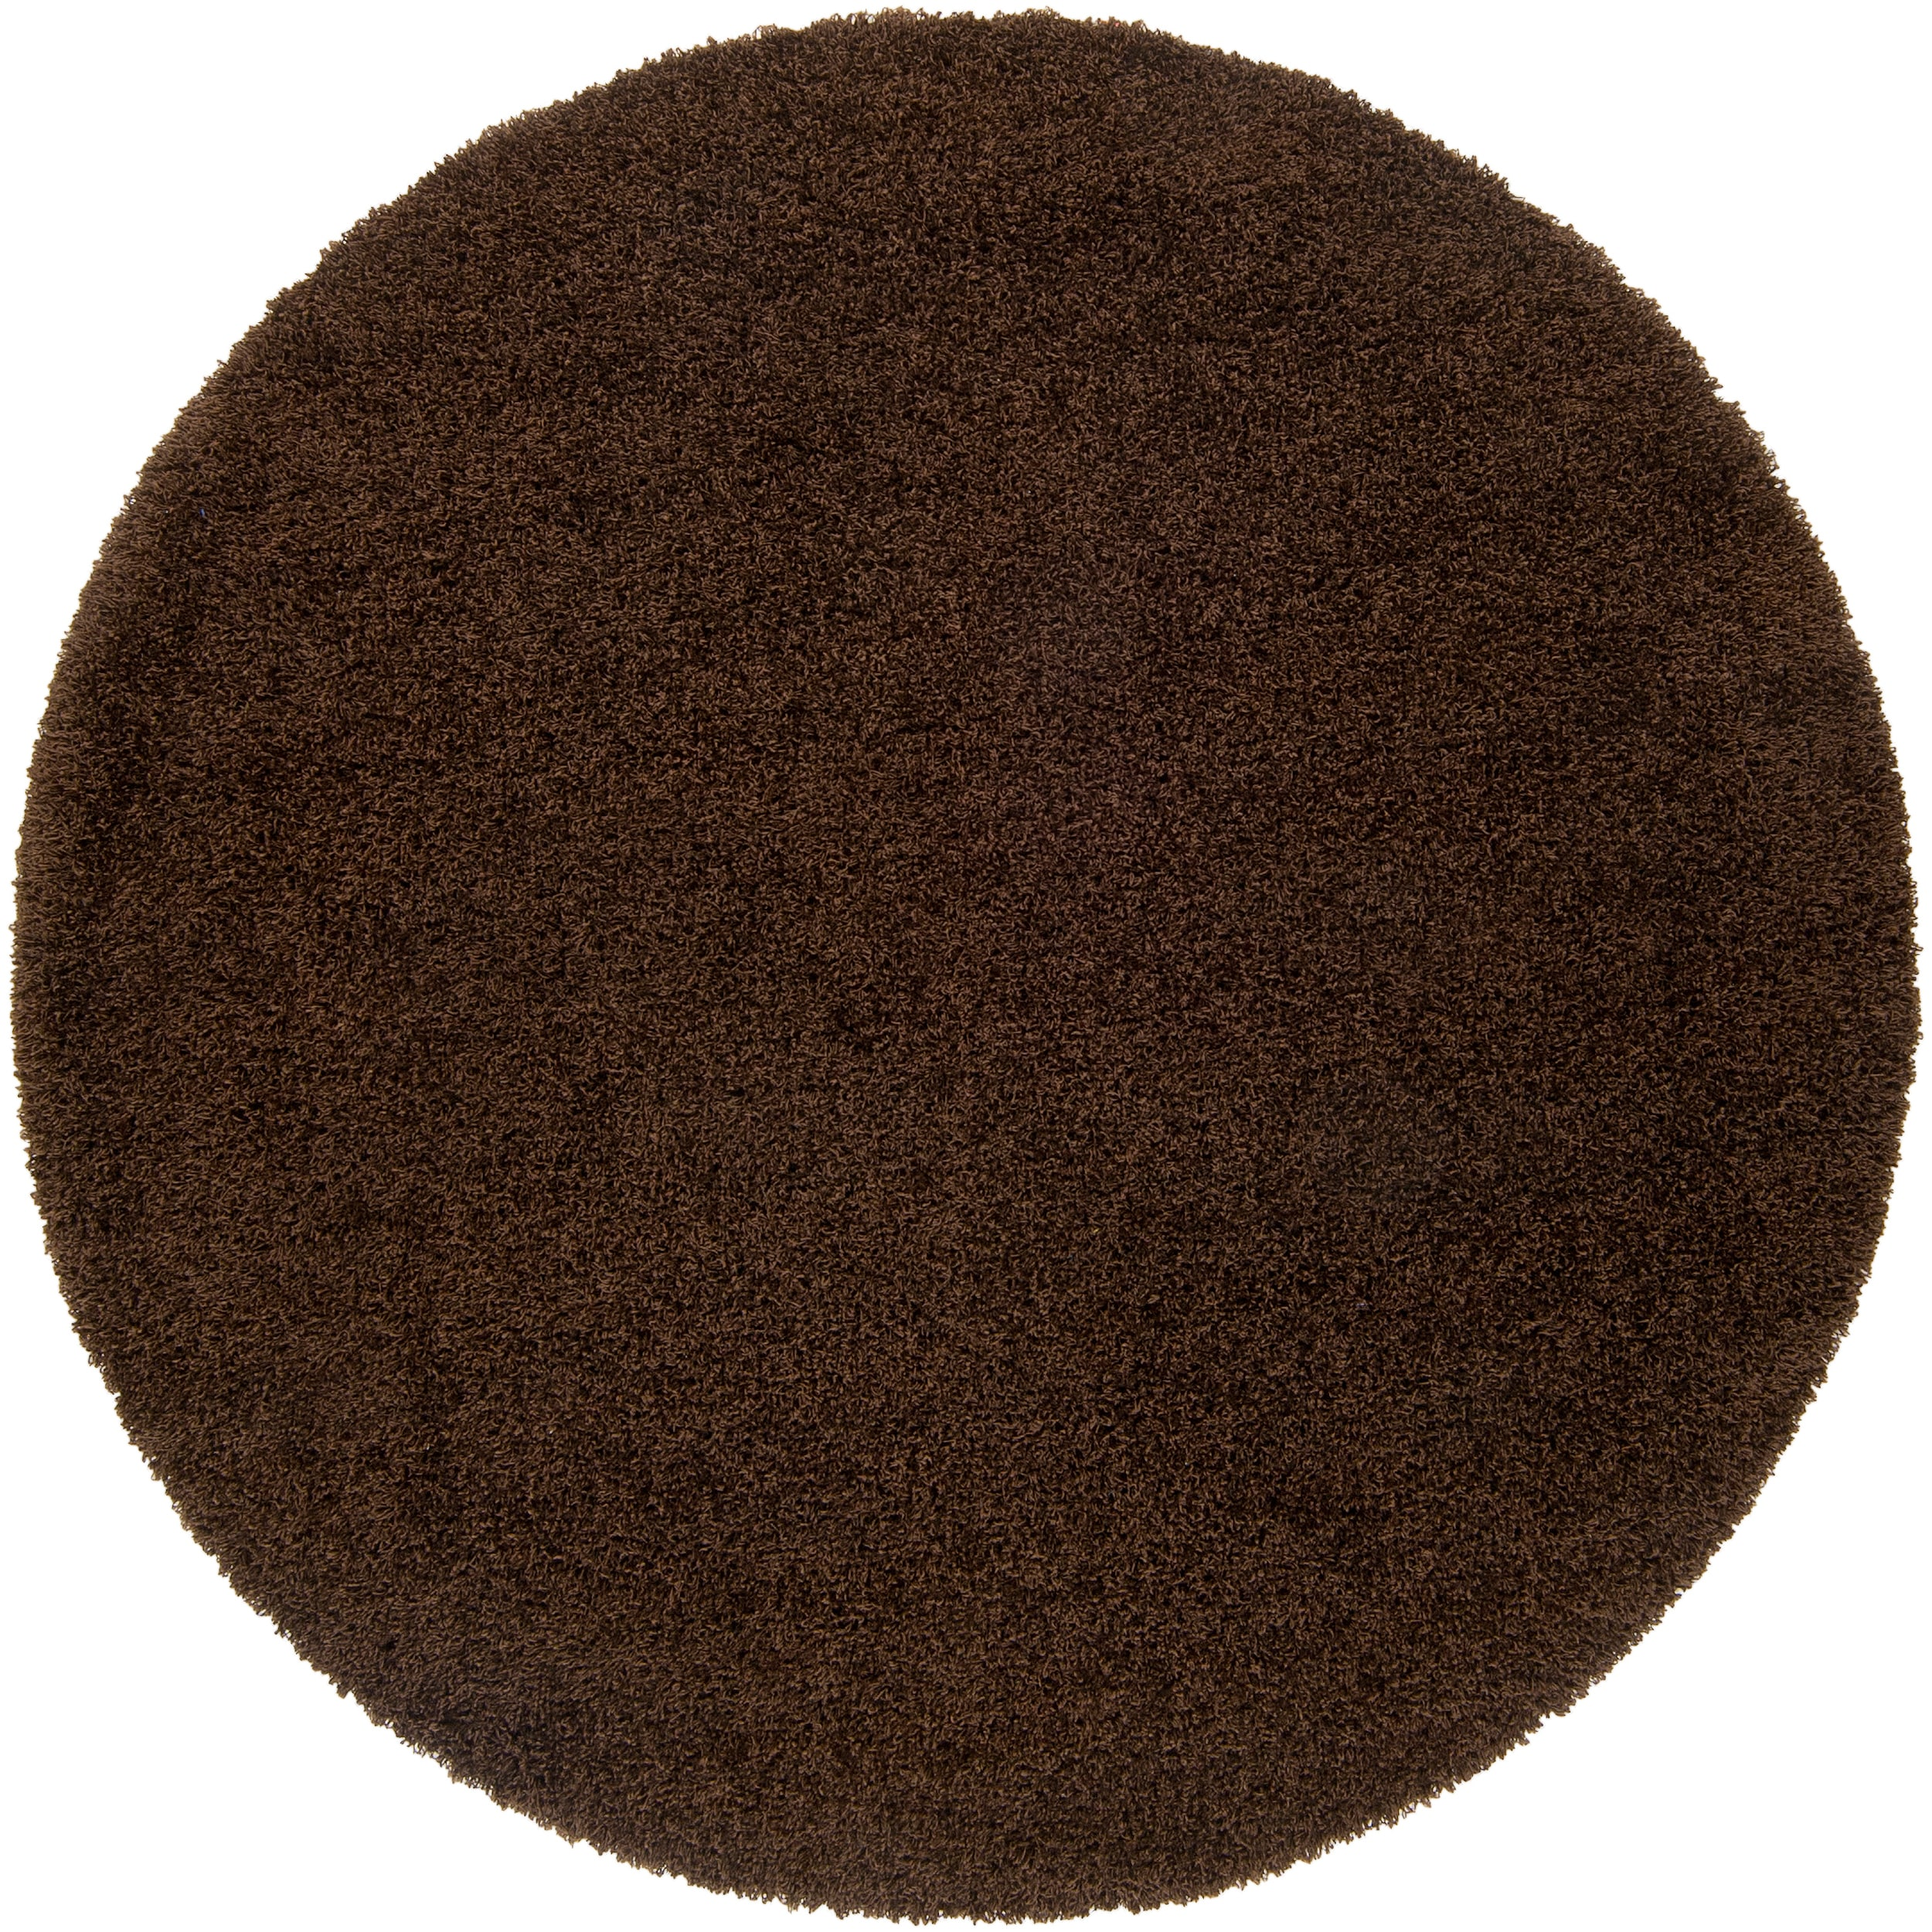 Expertly Woven Brown Wolden Super Soft Shag Rug (8' Round)